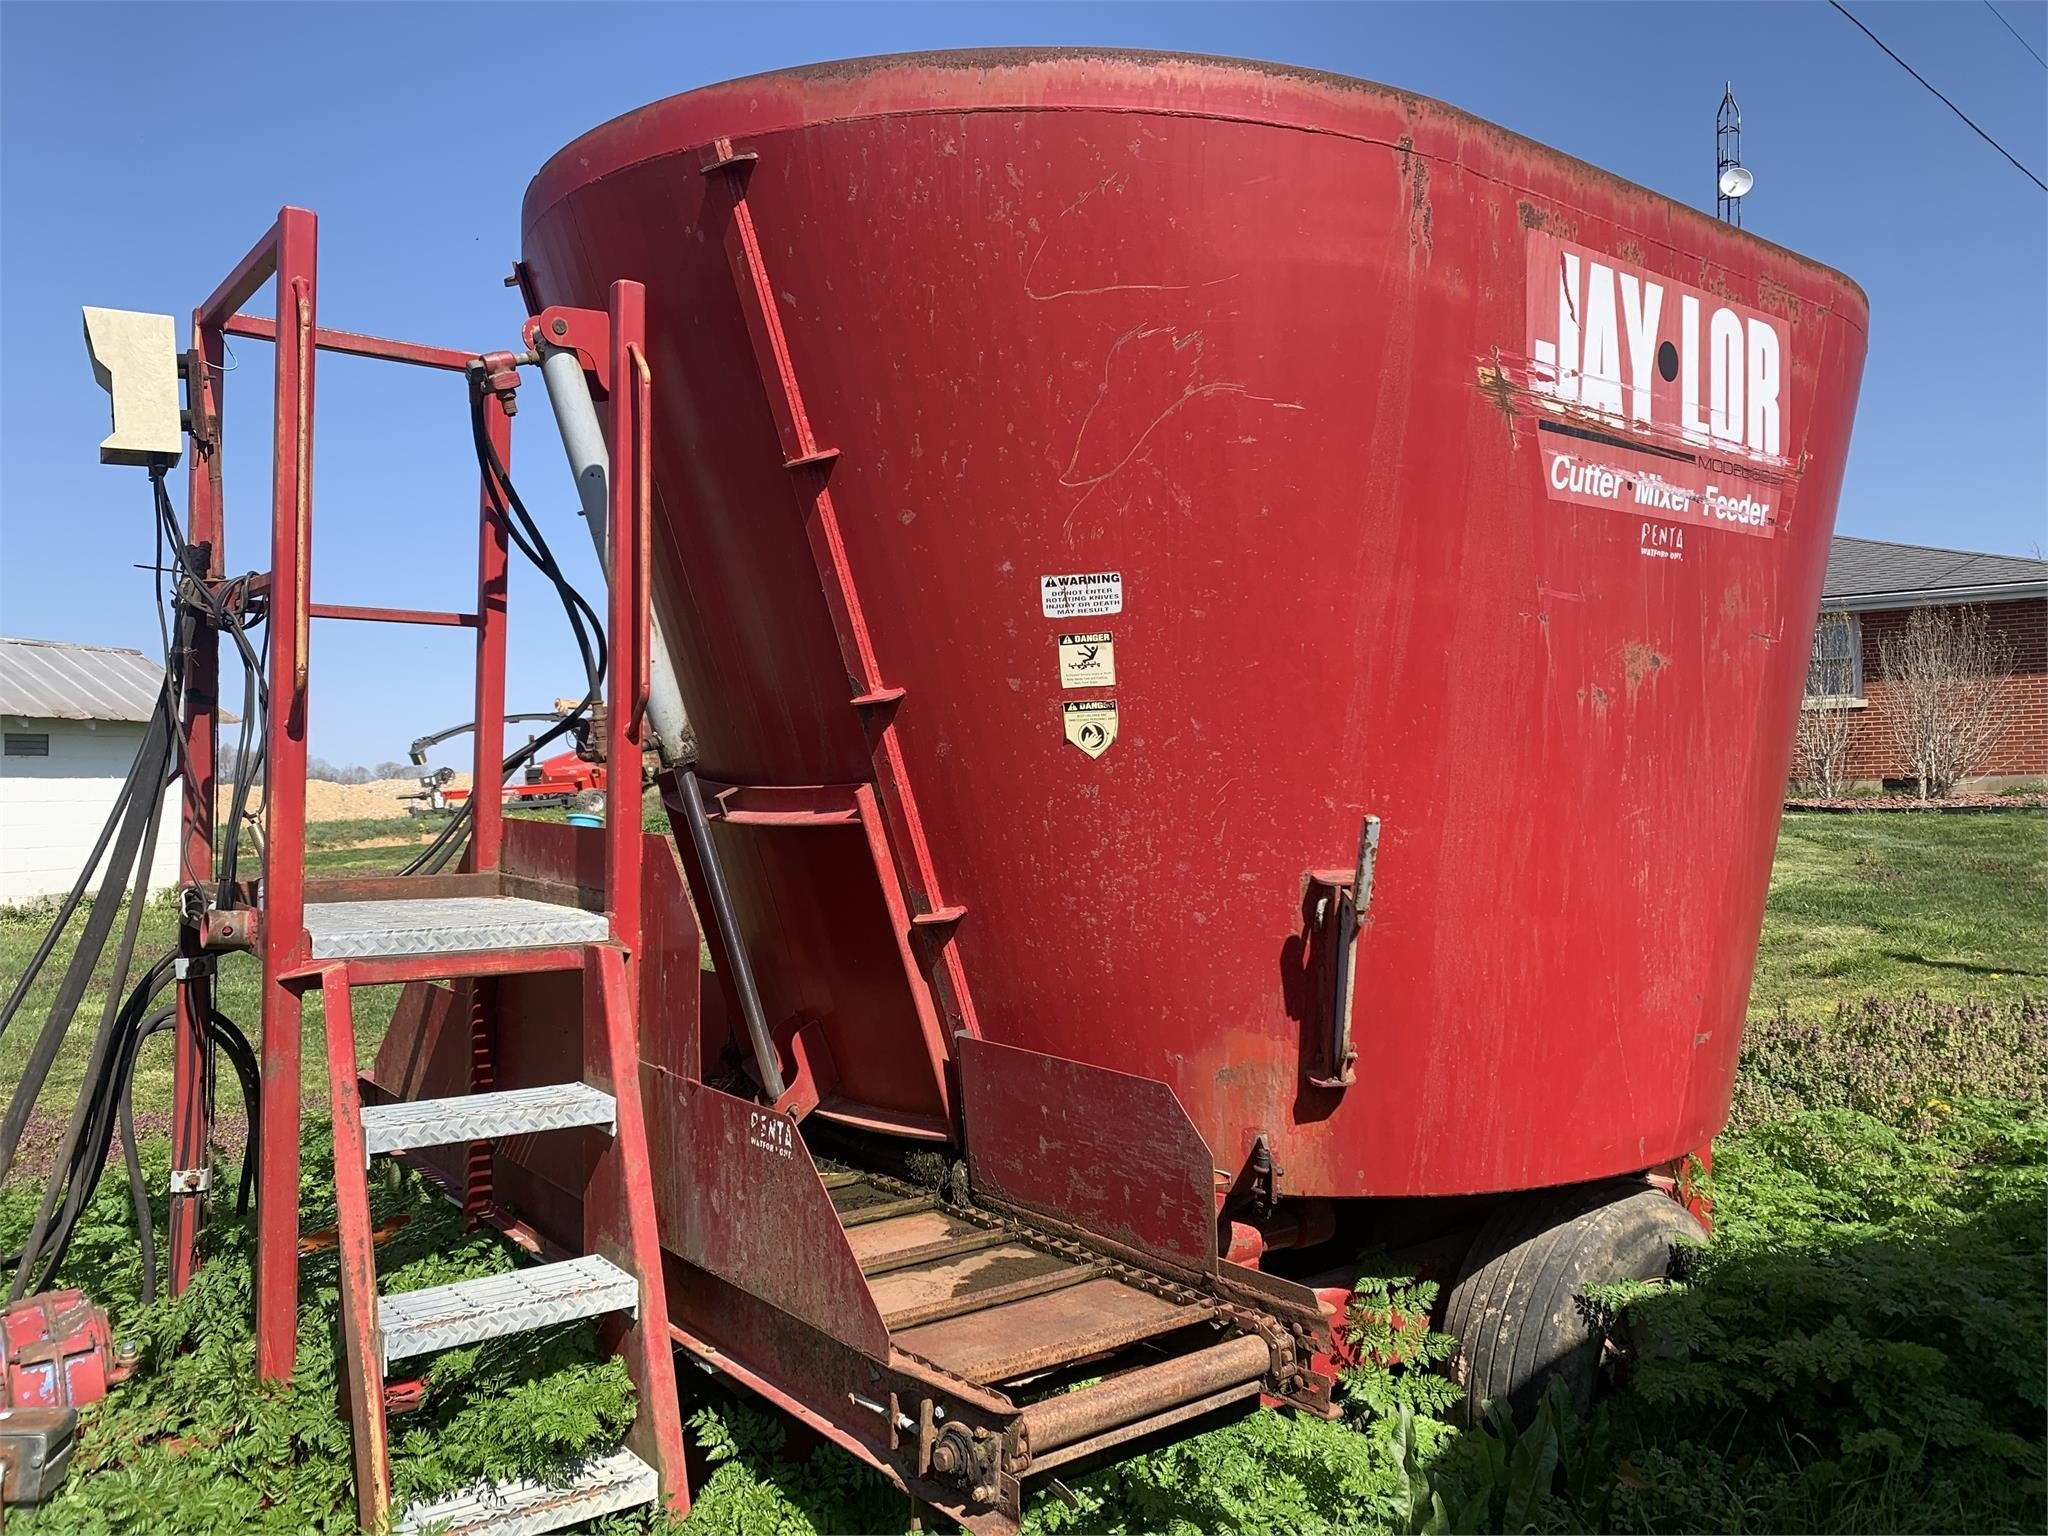 Jay Lor 1600 Grinders and Mixer